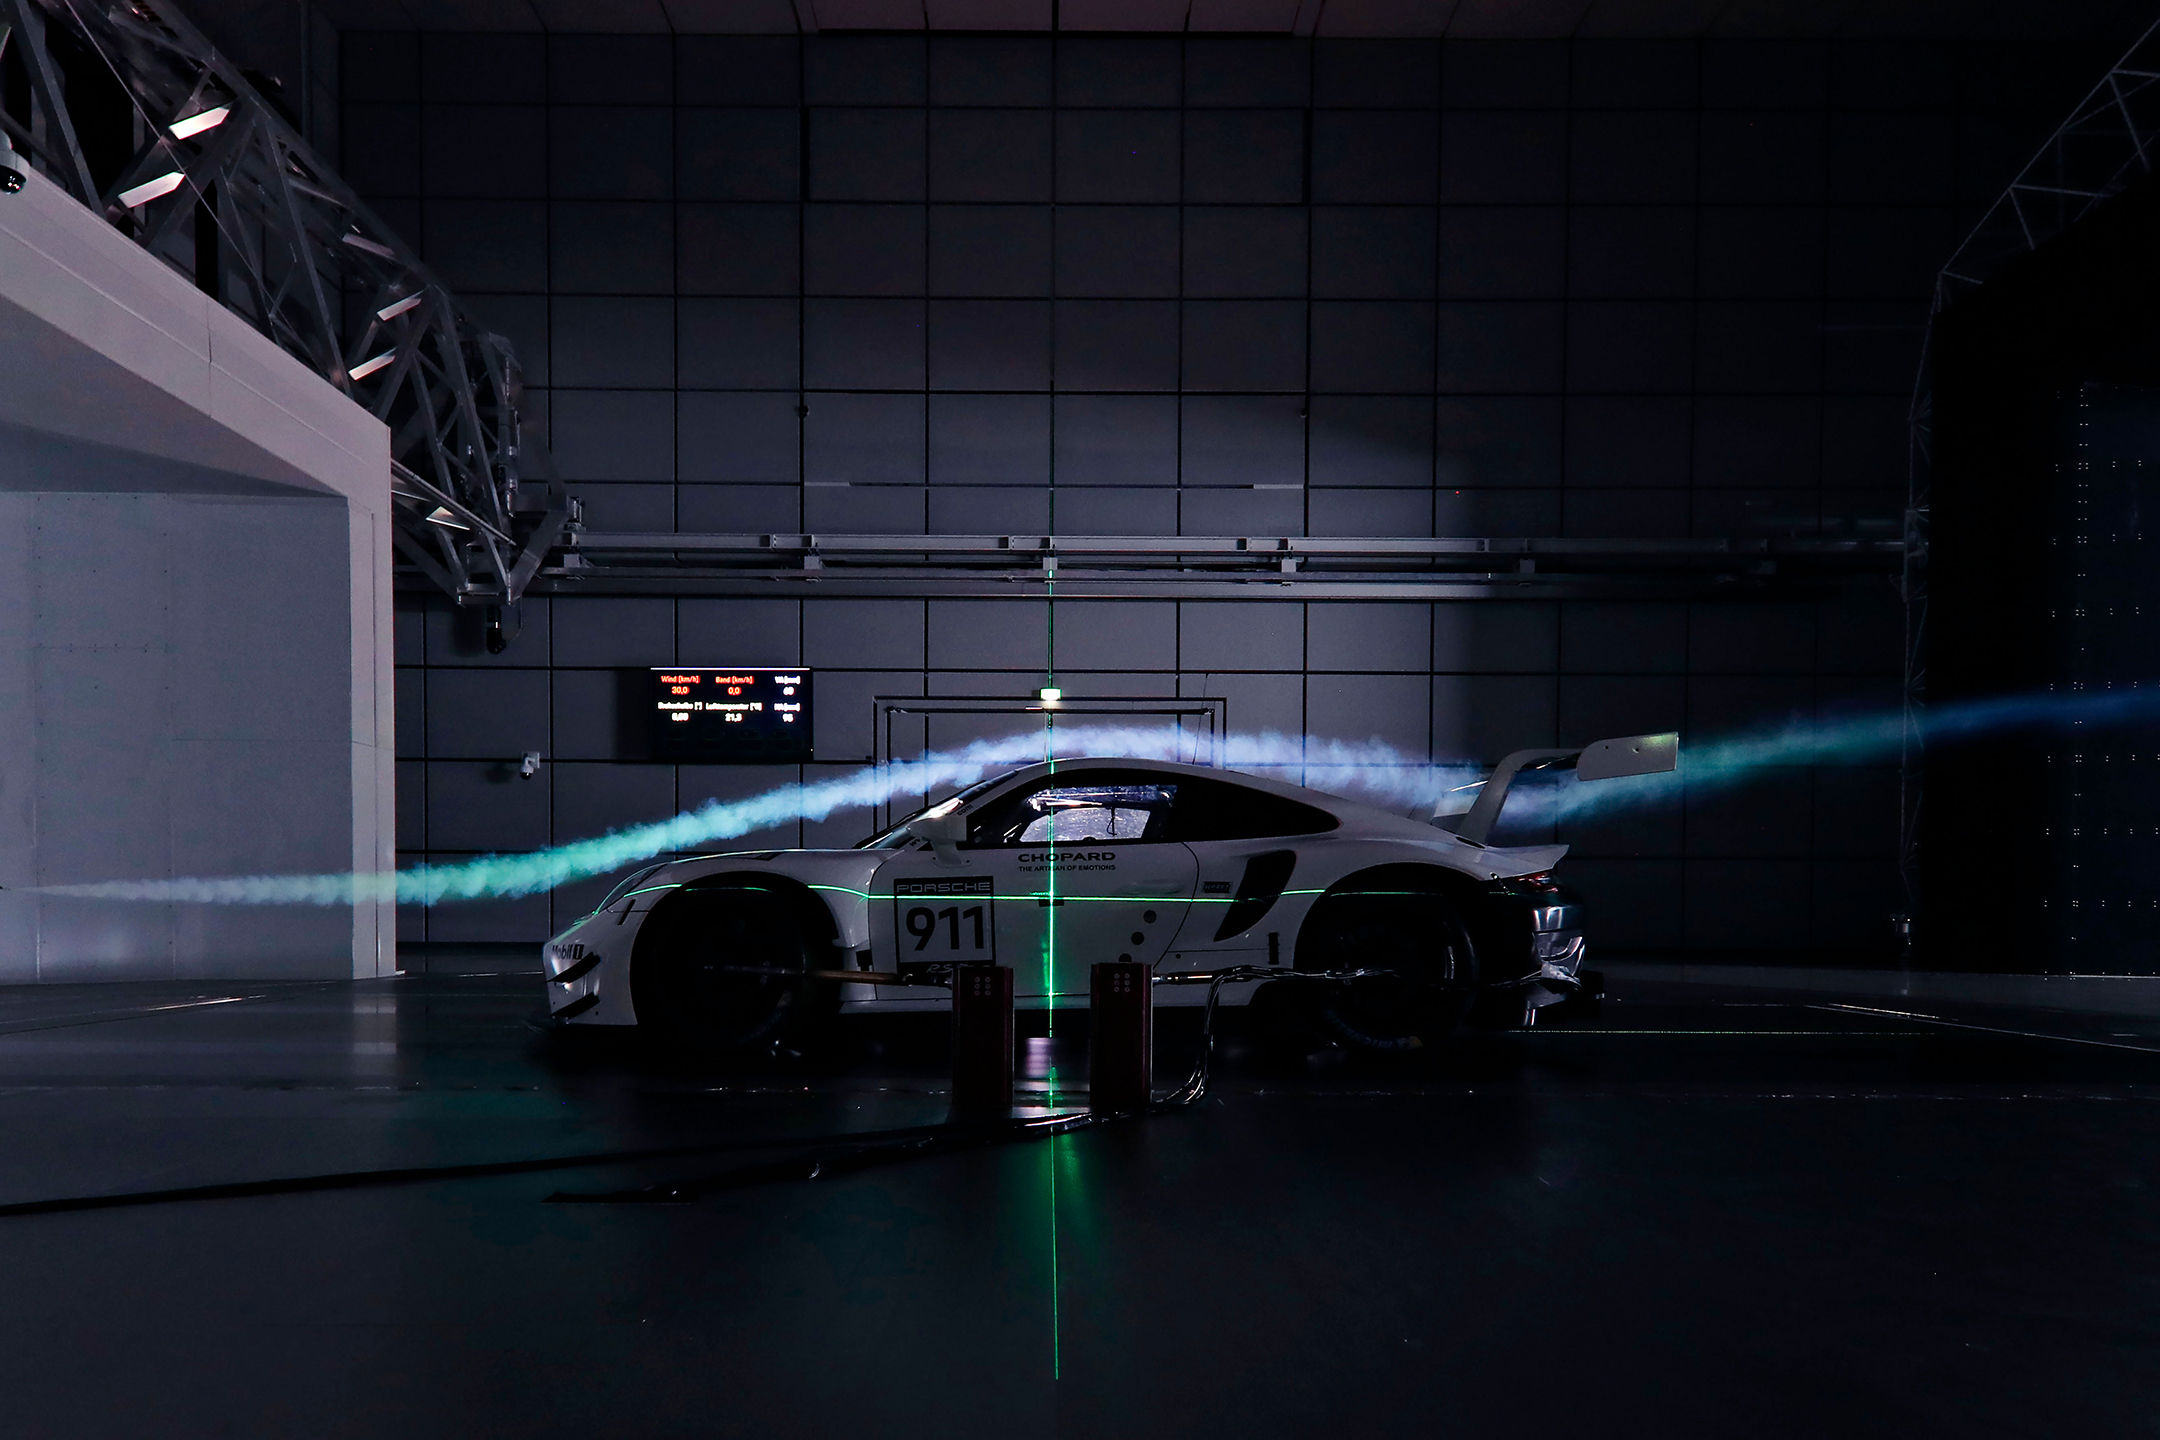 Porsche 911 RSR-19 - 2019 - side-face - work in progress - aero testing - dark - wind tunnel / soufflerie